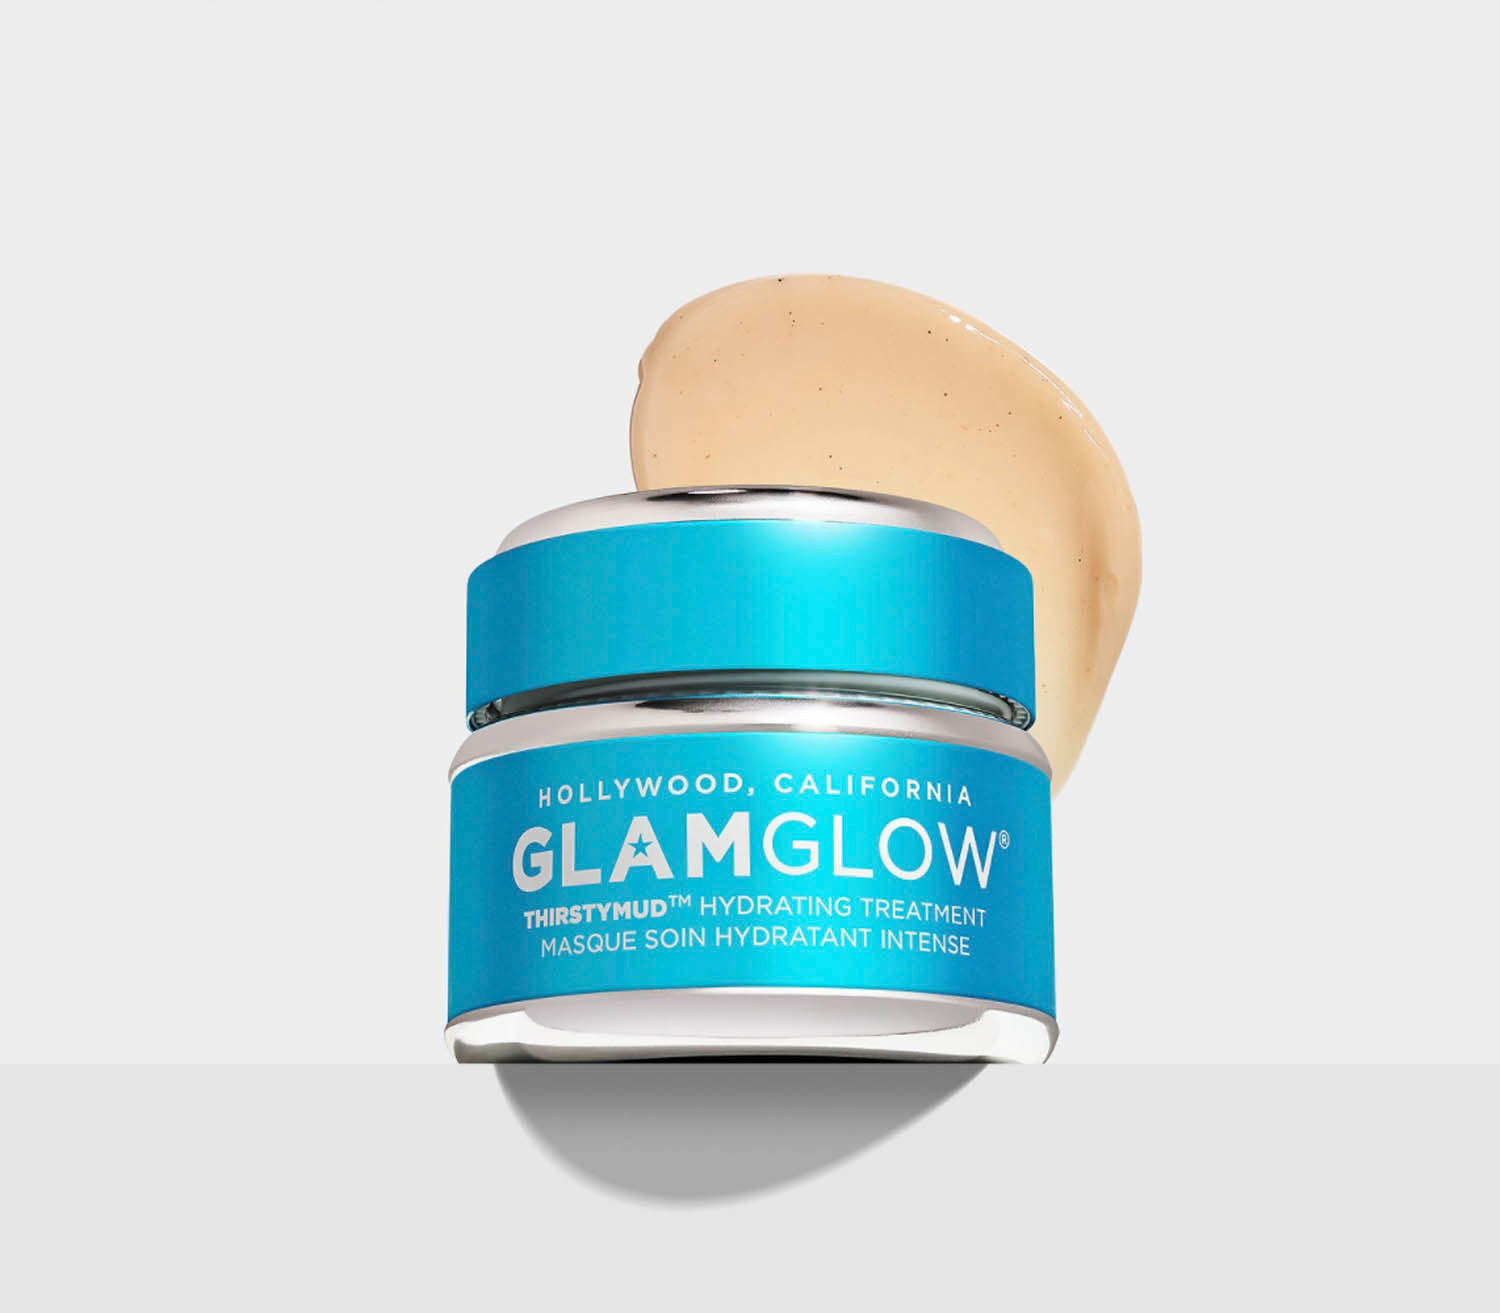 Glam Glow face mask product